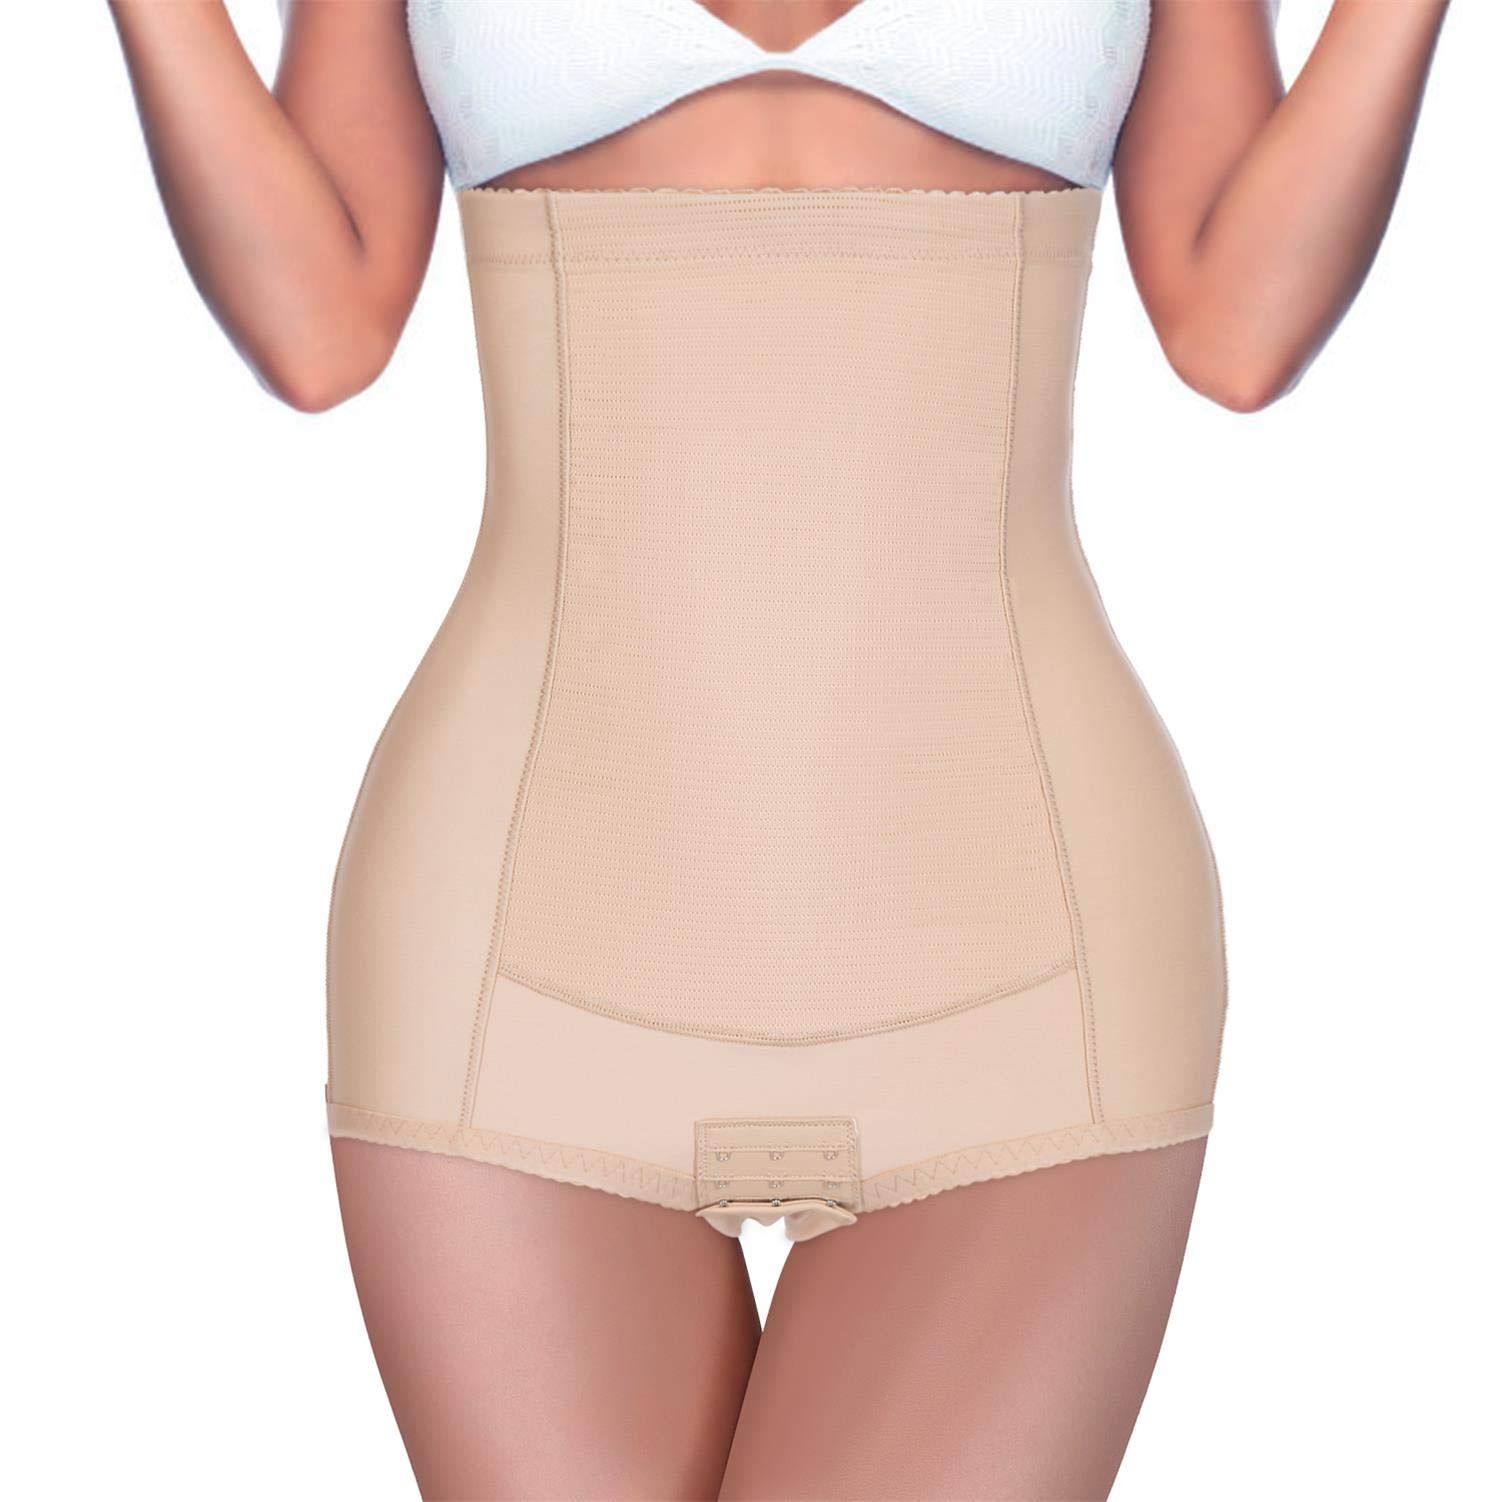 1607e6120 BRABIC Women High Waist Control Panties Postpartum Belly Girdle Band  Slimming Underwear Butt Lifter Shapewear product